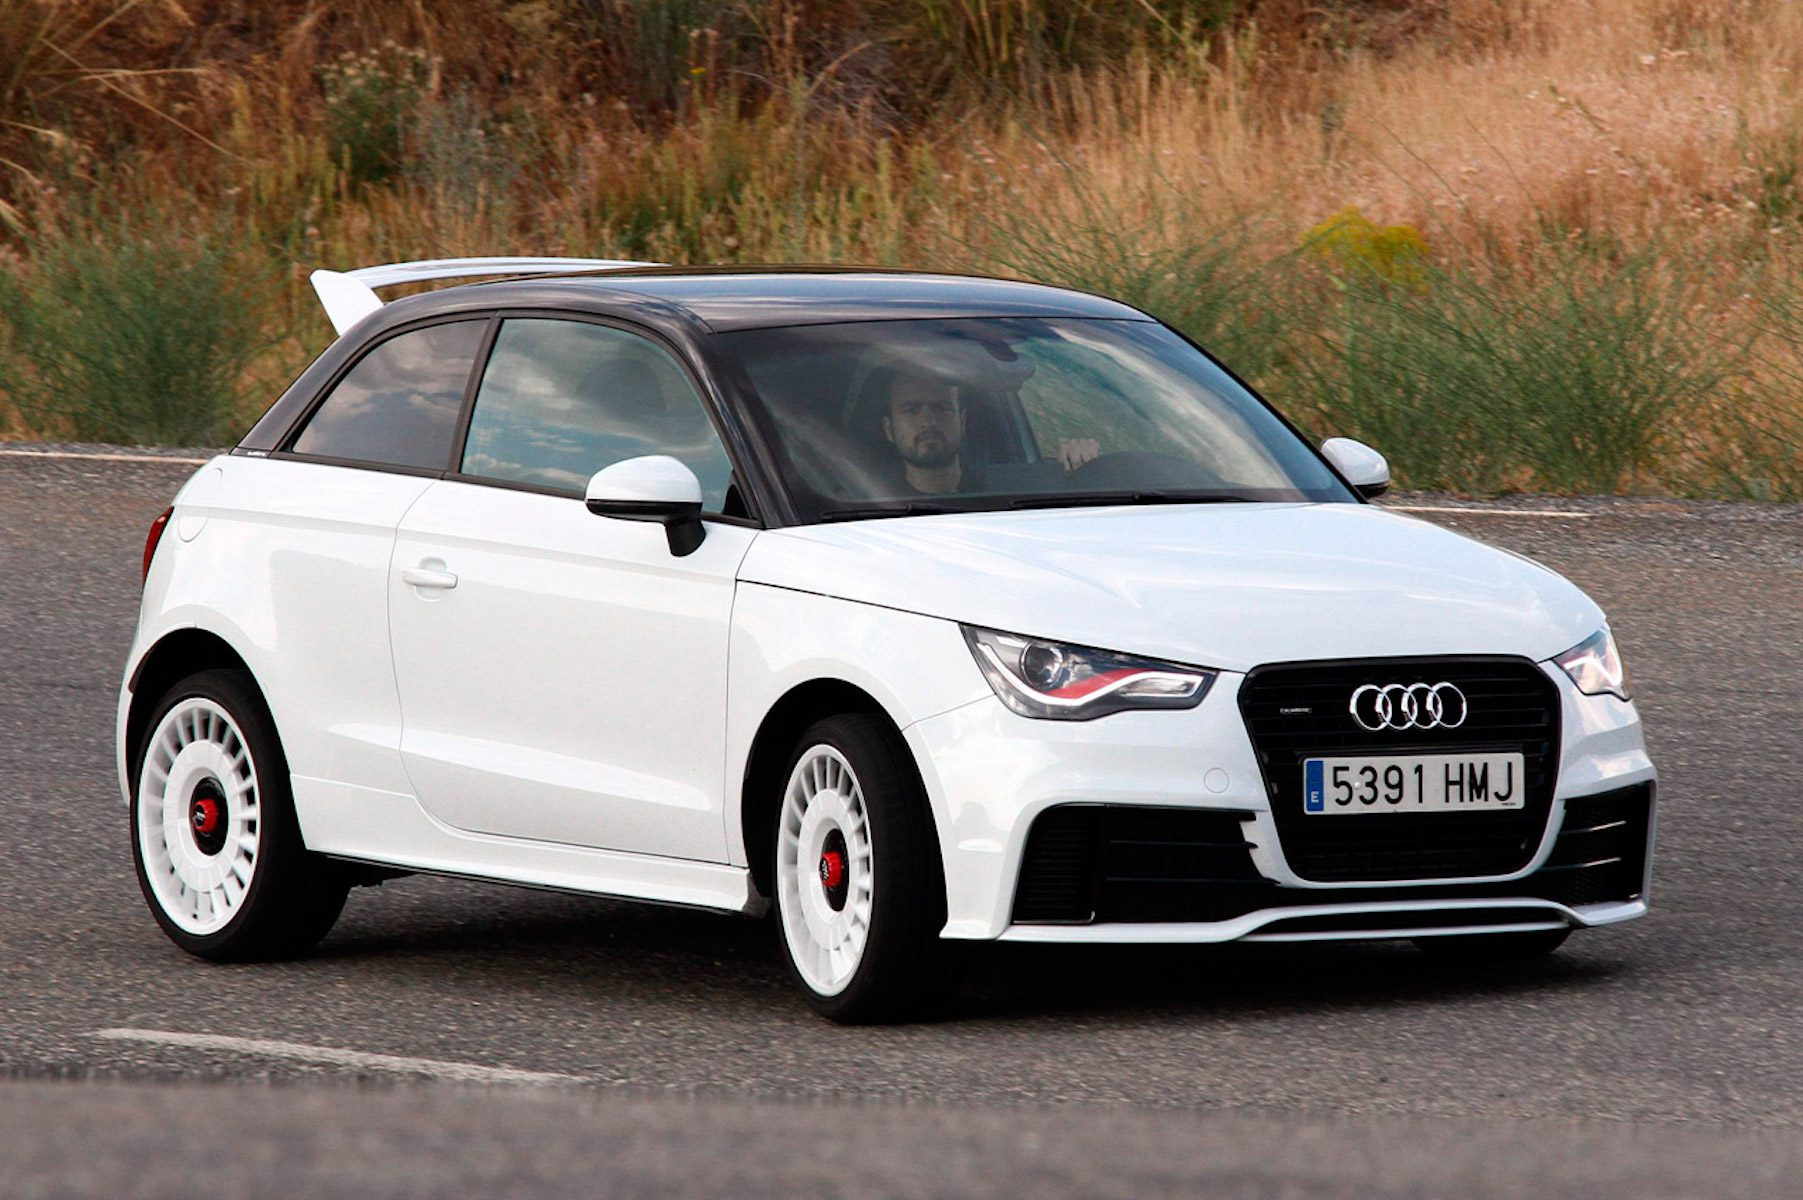 A side view of a driver enjoying his ride in the 2011 White Audi A1 Quattro Coupe